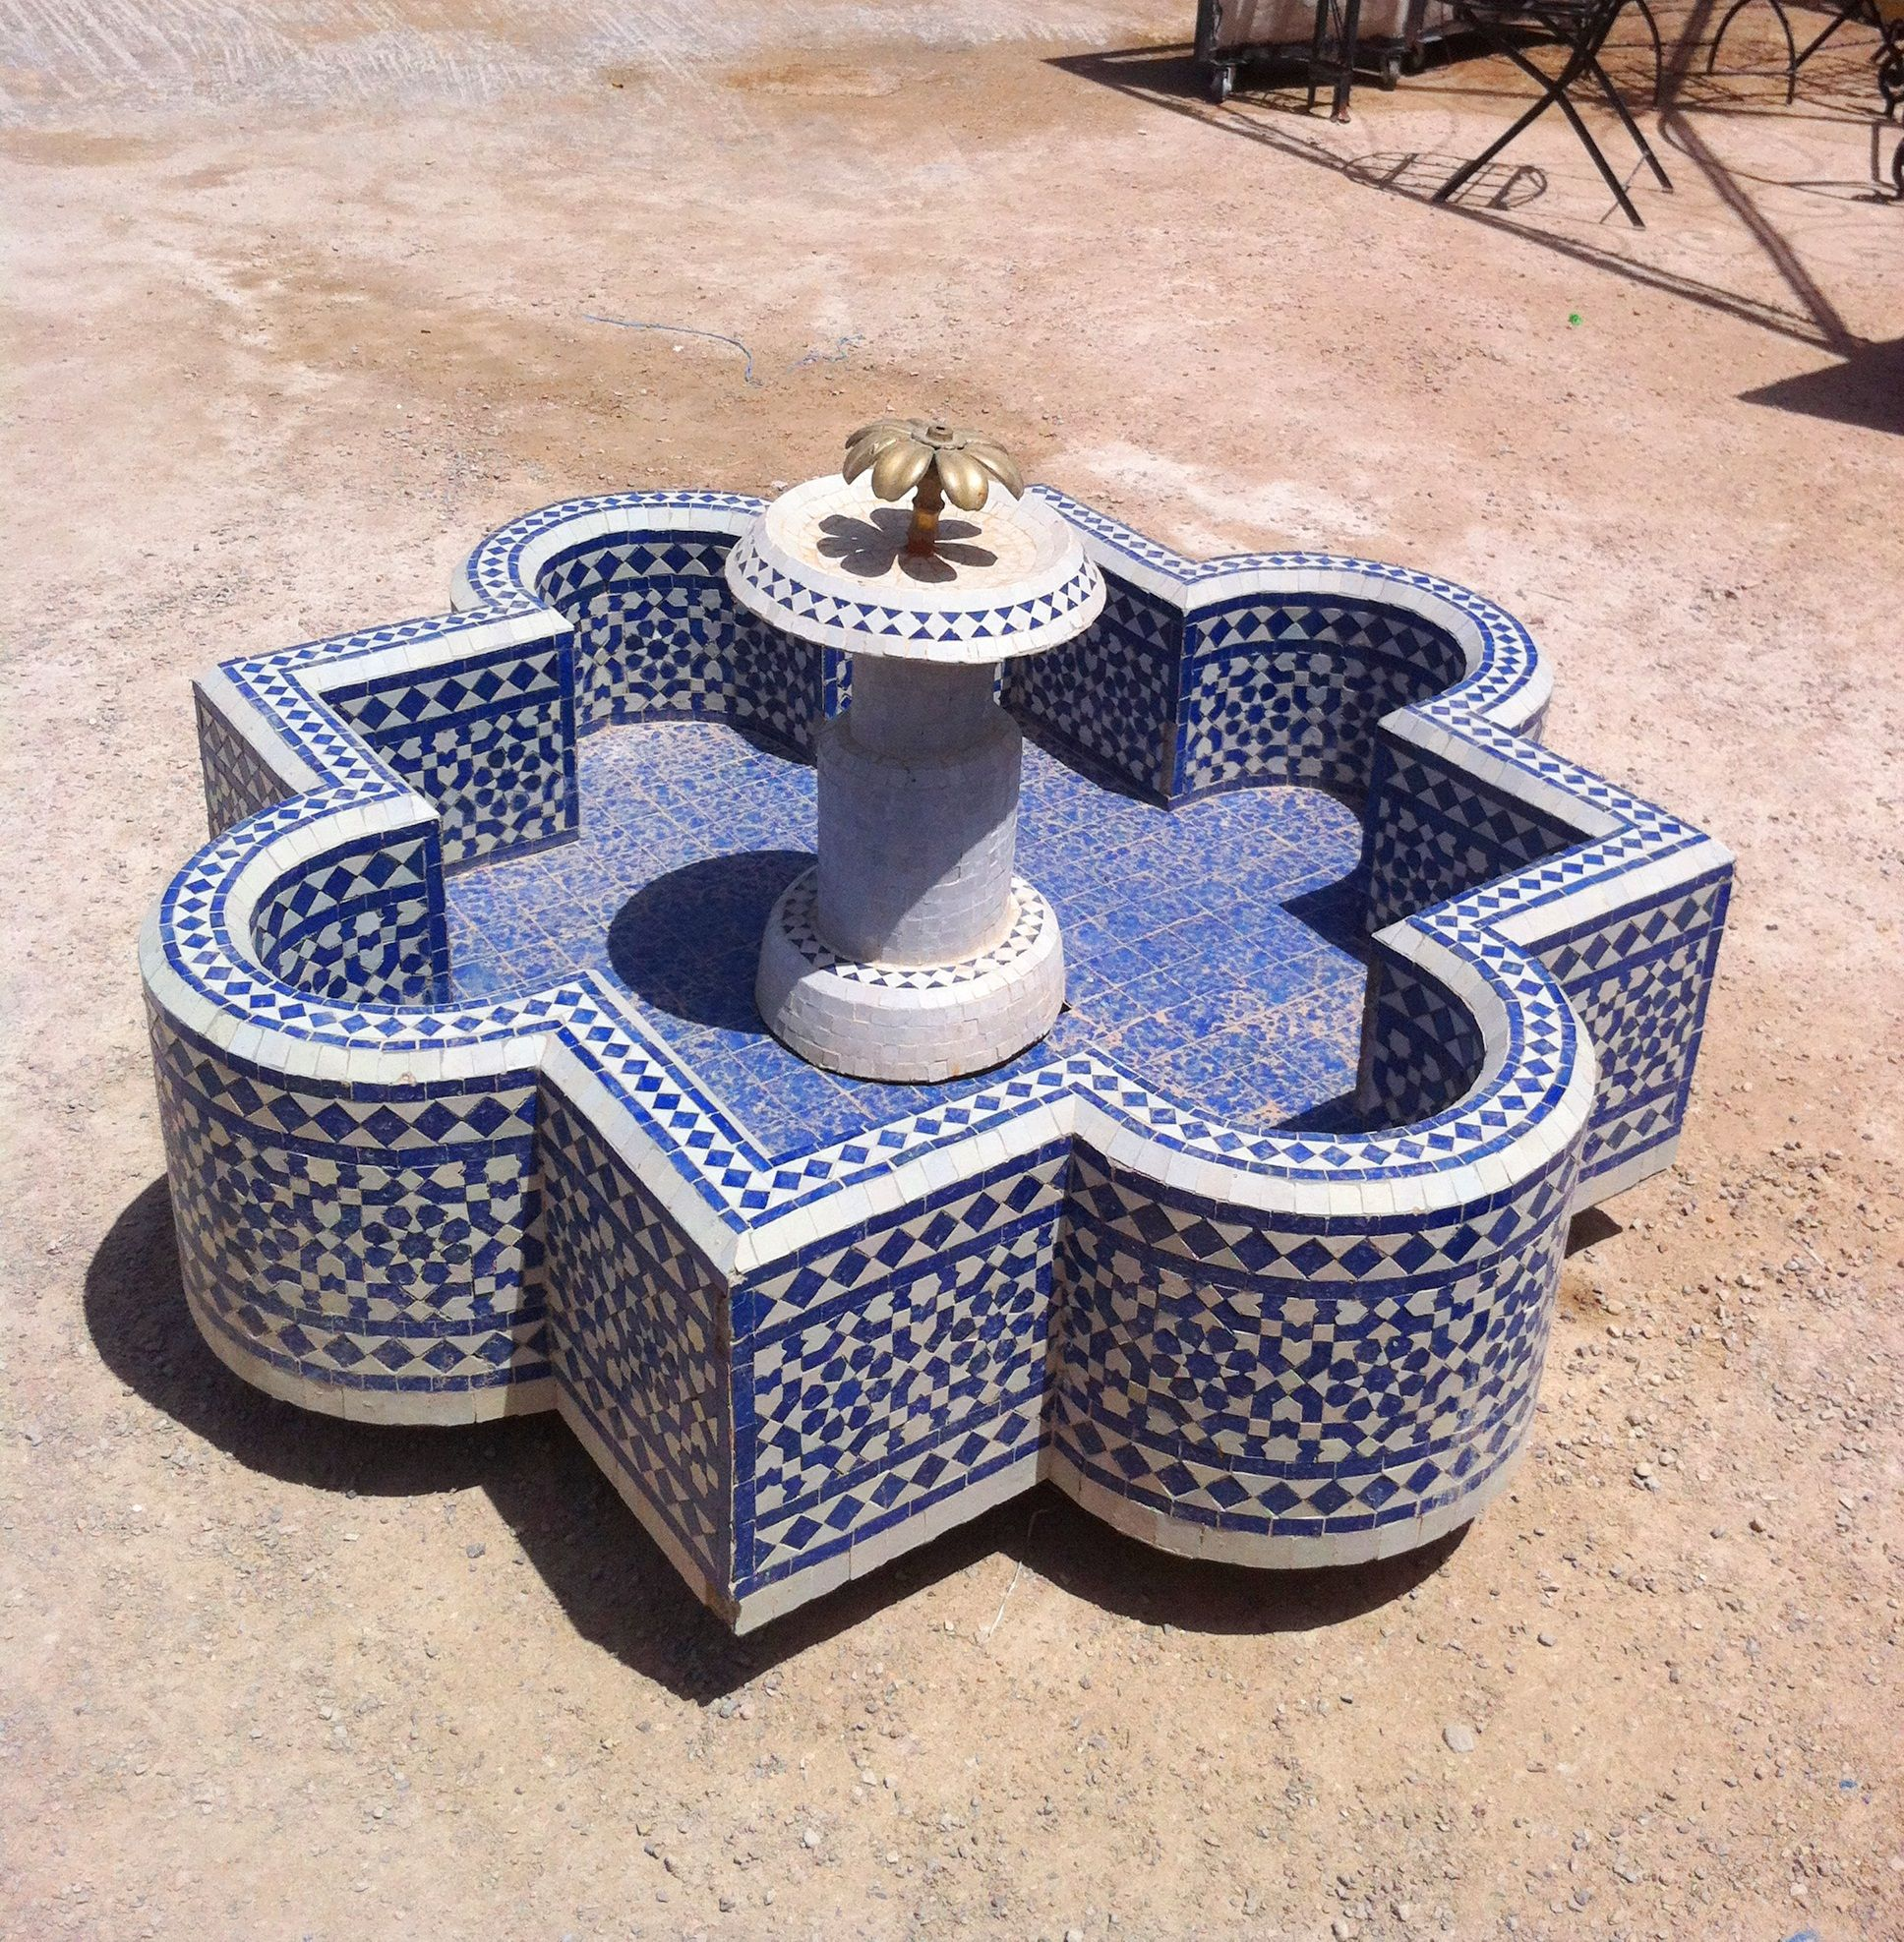 A Beautiful Mosaic Tiled Fountain At Moroccan House Photo By My Sis Ds